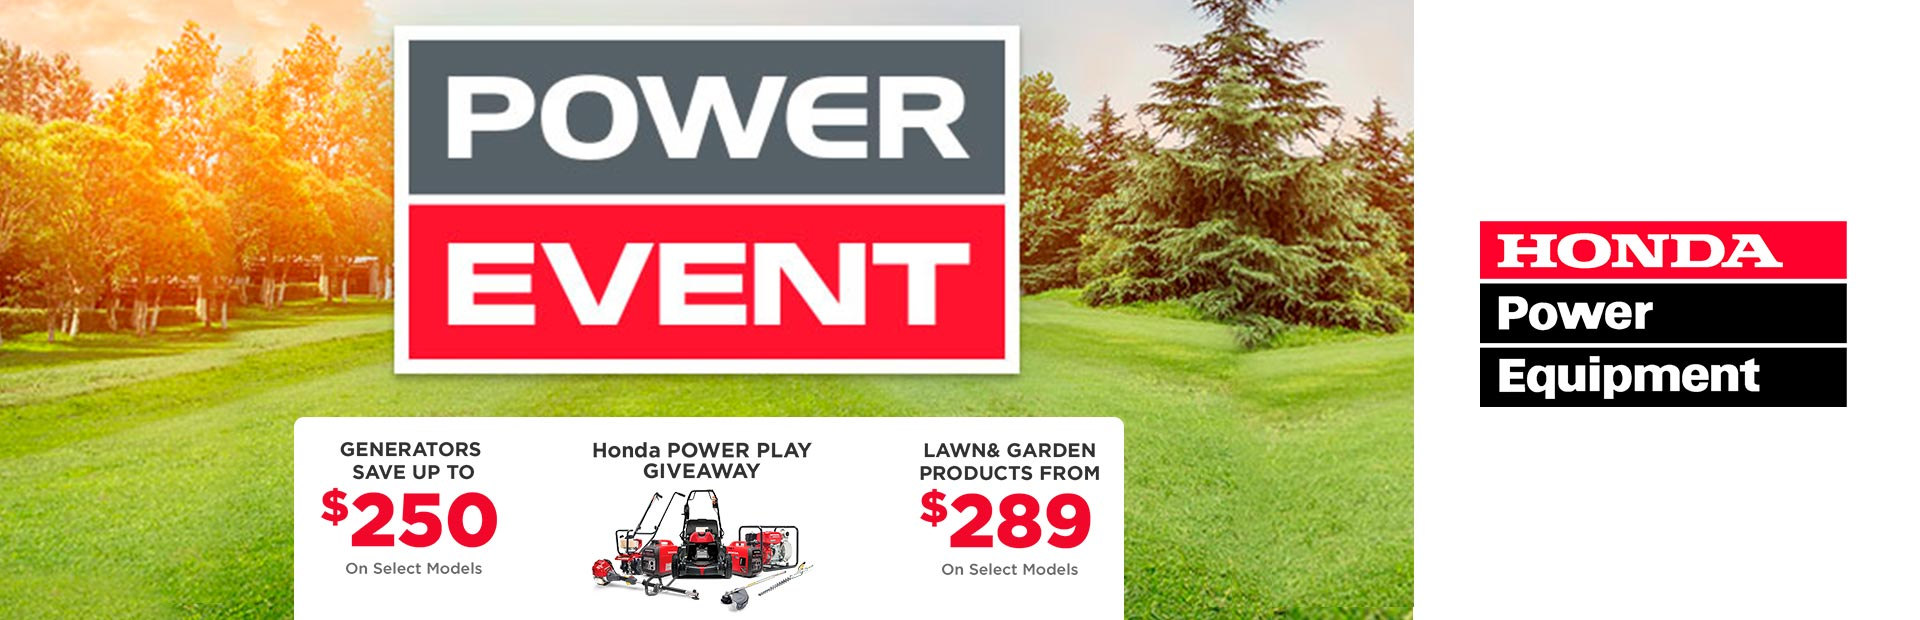 Honda Power Equipment: Honda Power Event